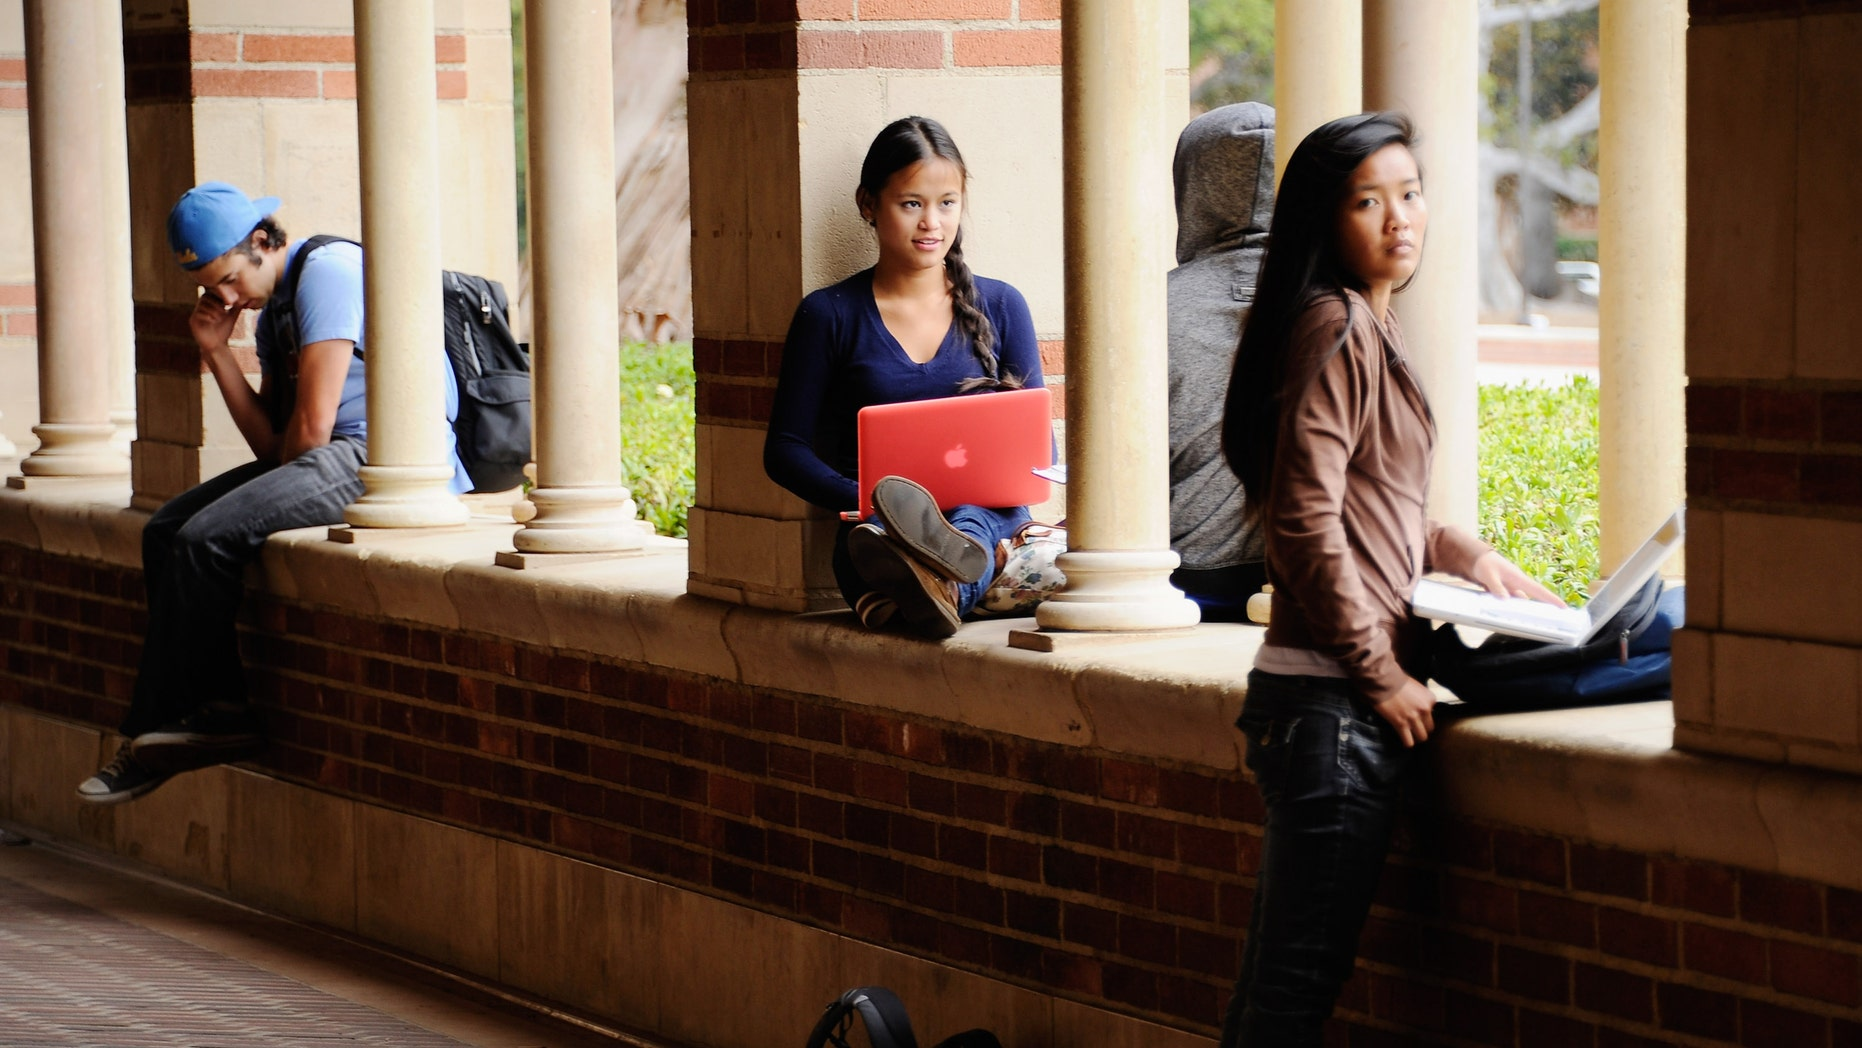 LOS ANGELES, CA - APRIL 23:  Students take a break at Royce Hall on the campus of UCLA on April 23, 2012 in Los Angeles, California. According to reports, half of recent college graduates with bachelor's degrees are finding themselves underemployed or jobless.  (Photo by Kevork Djansezian/Getty Images)